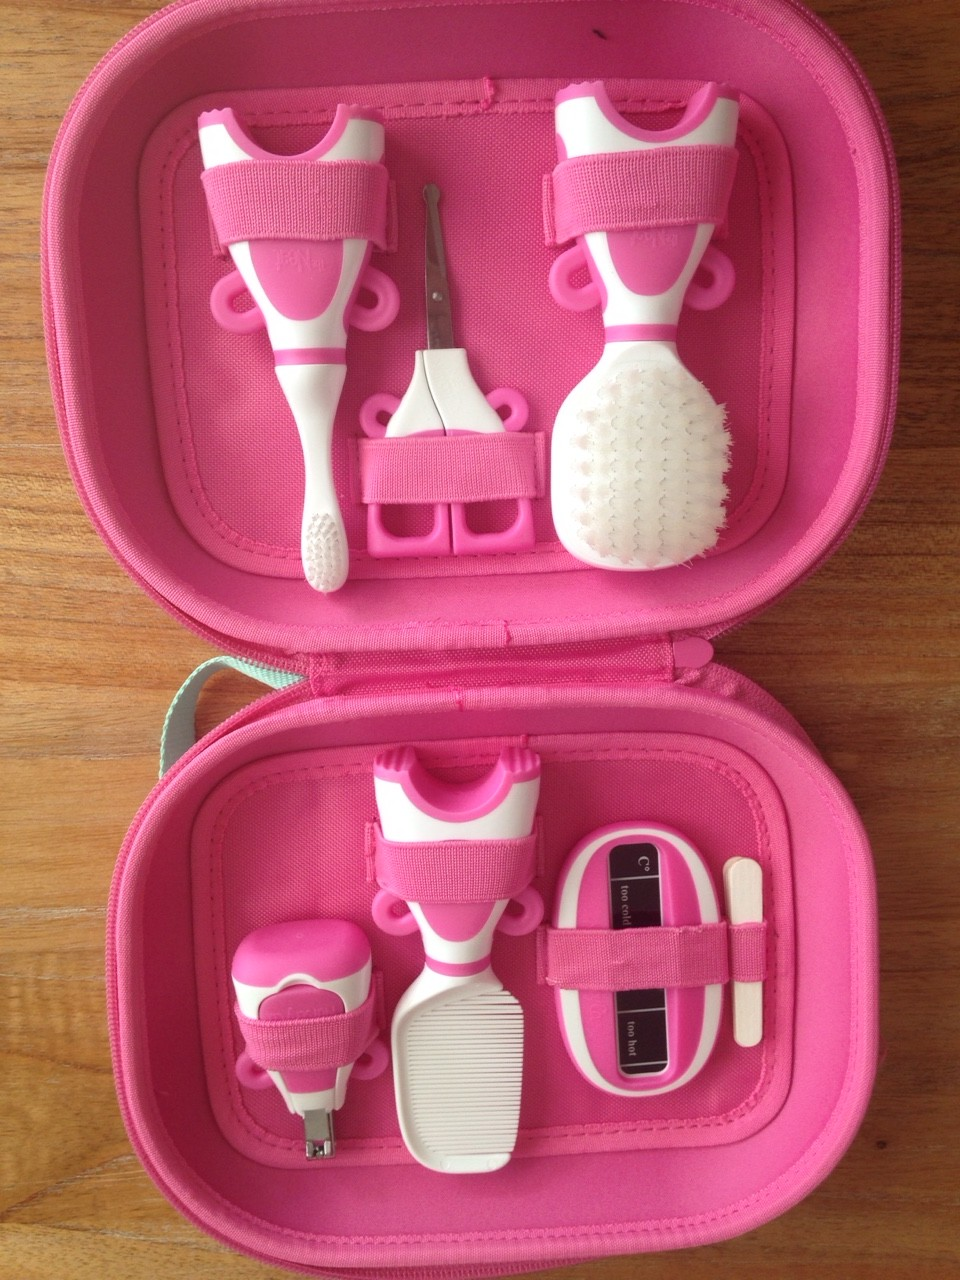 Win a gorgeous baby grooming kit